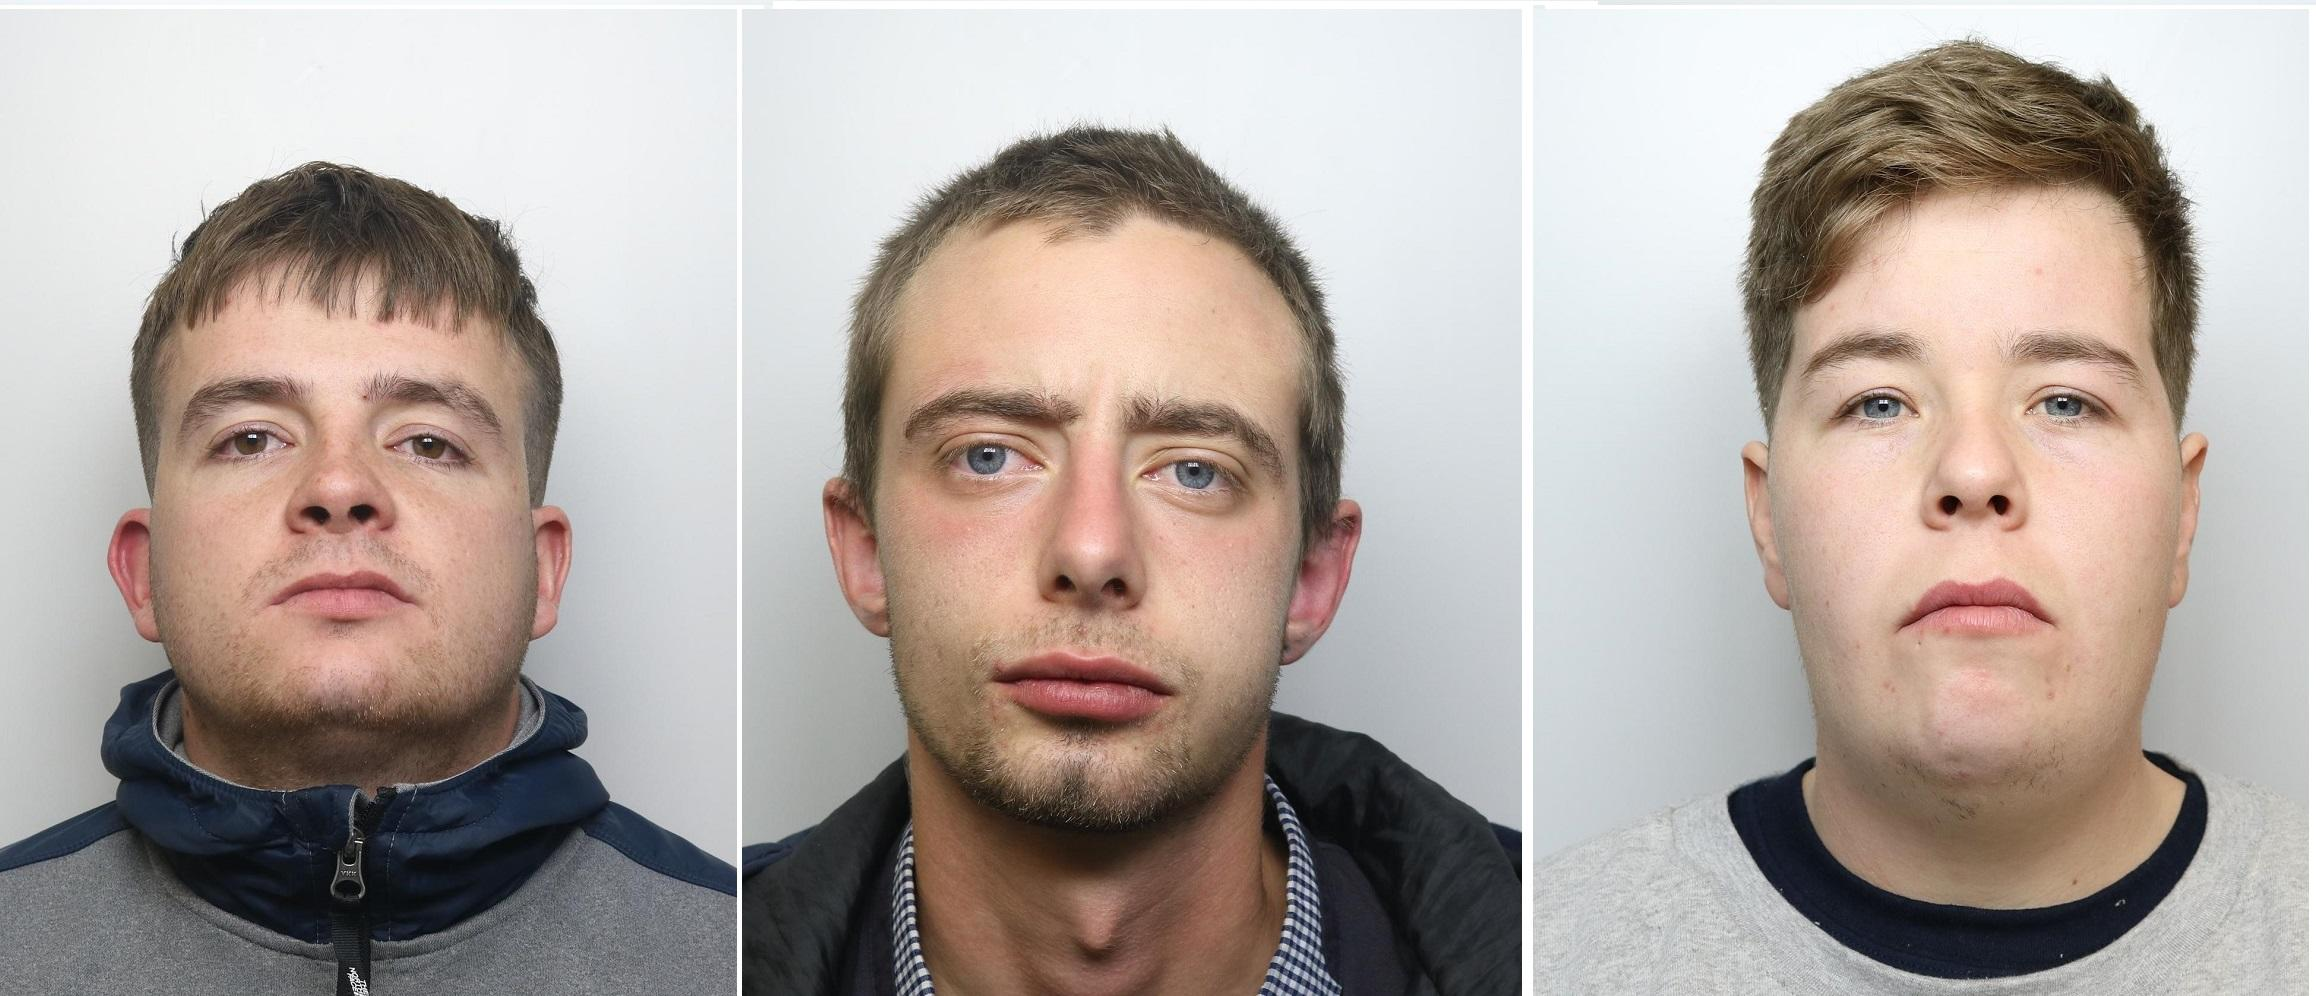 Three men jailed for life after torturing friend to death and then burning his body in 'massacre scene'